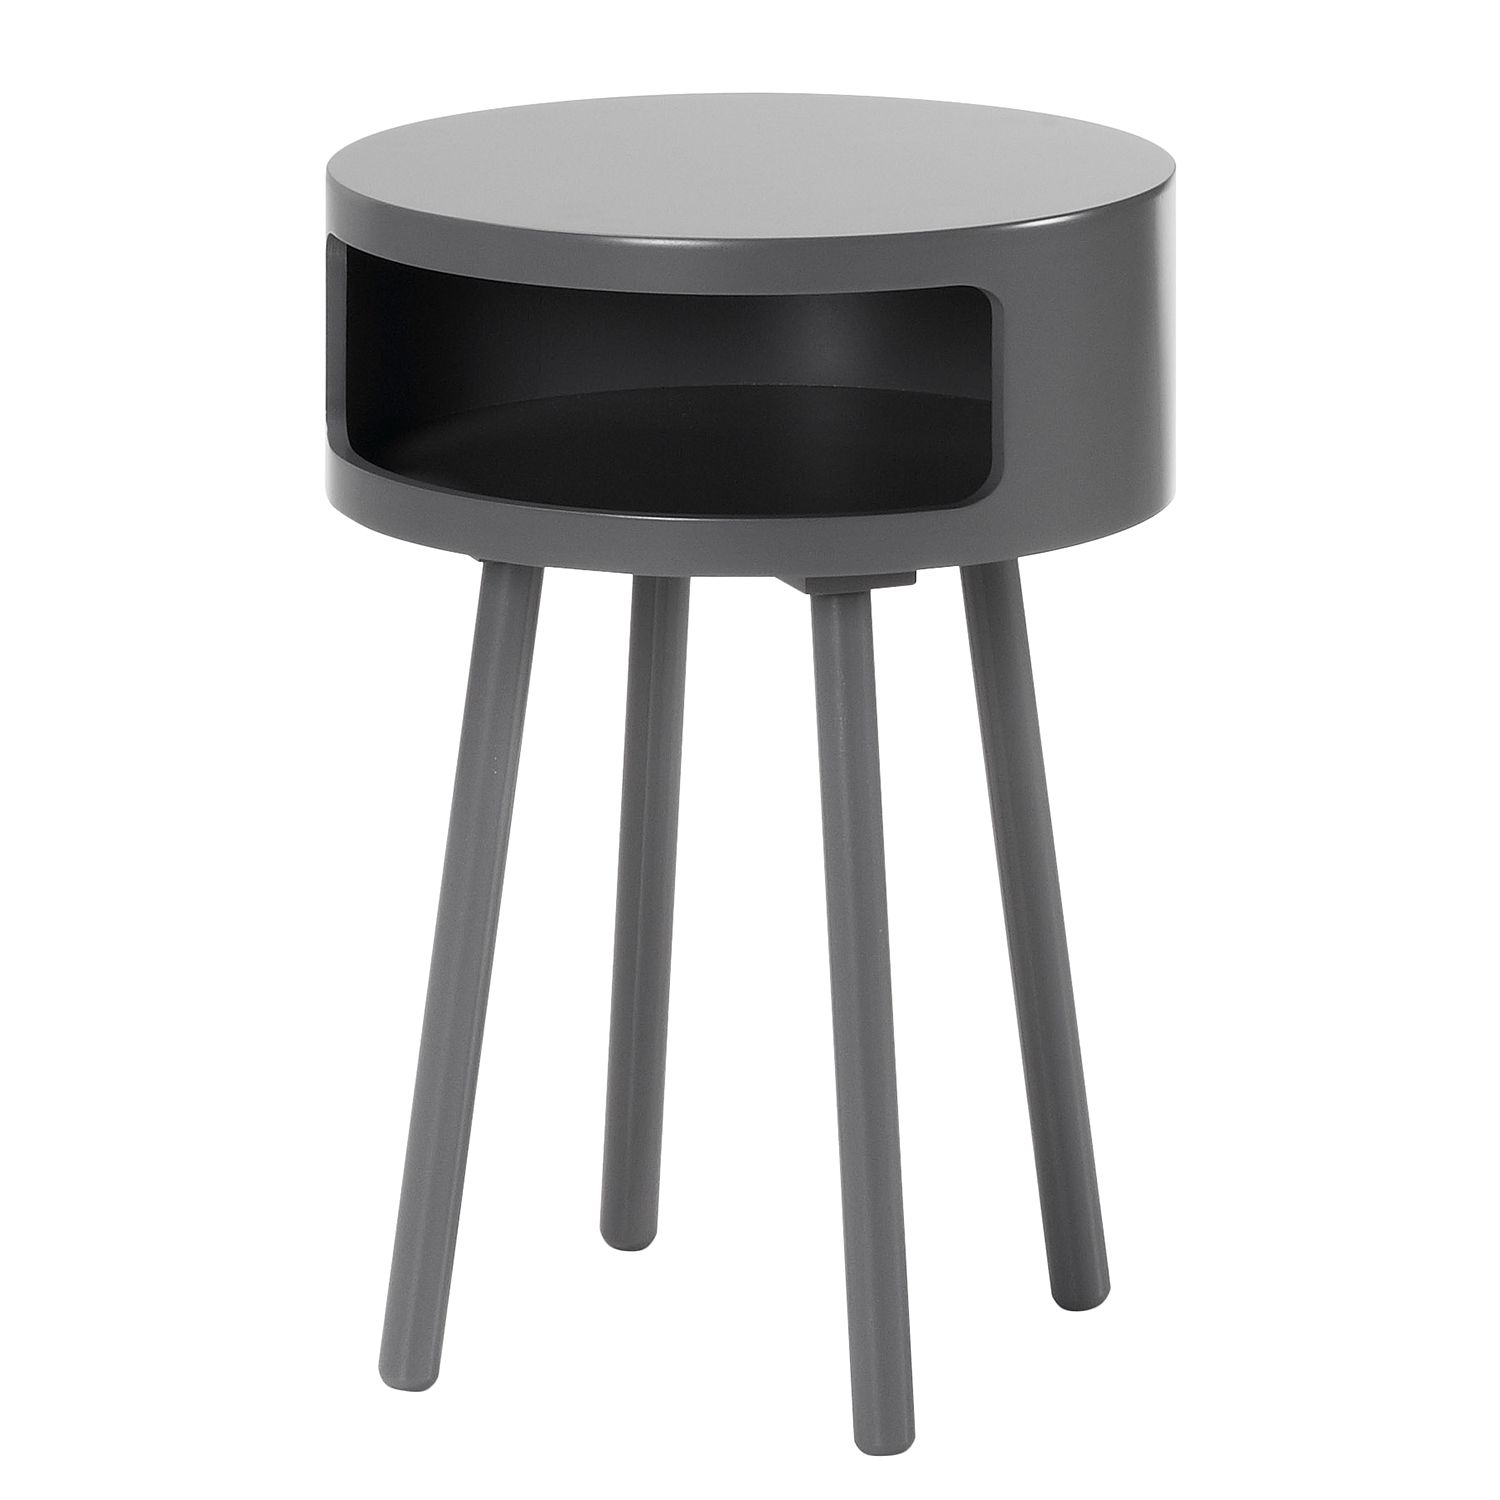 Table d'appoint Skoby